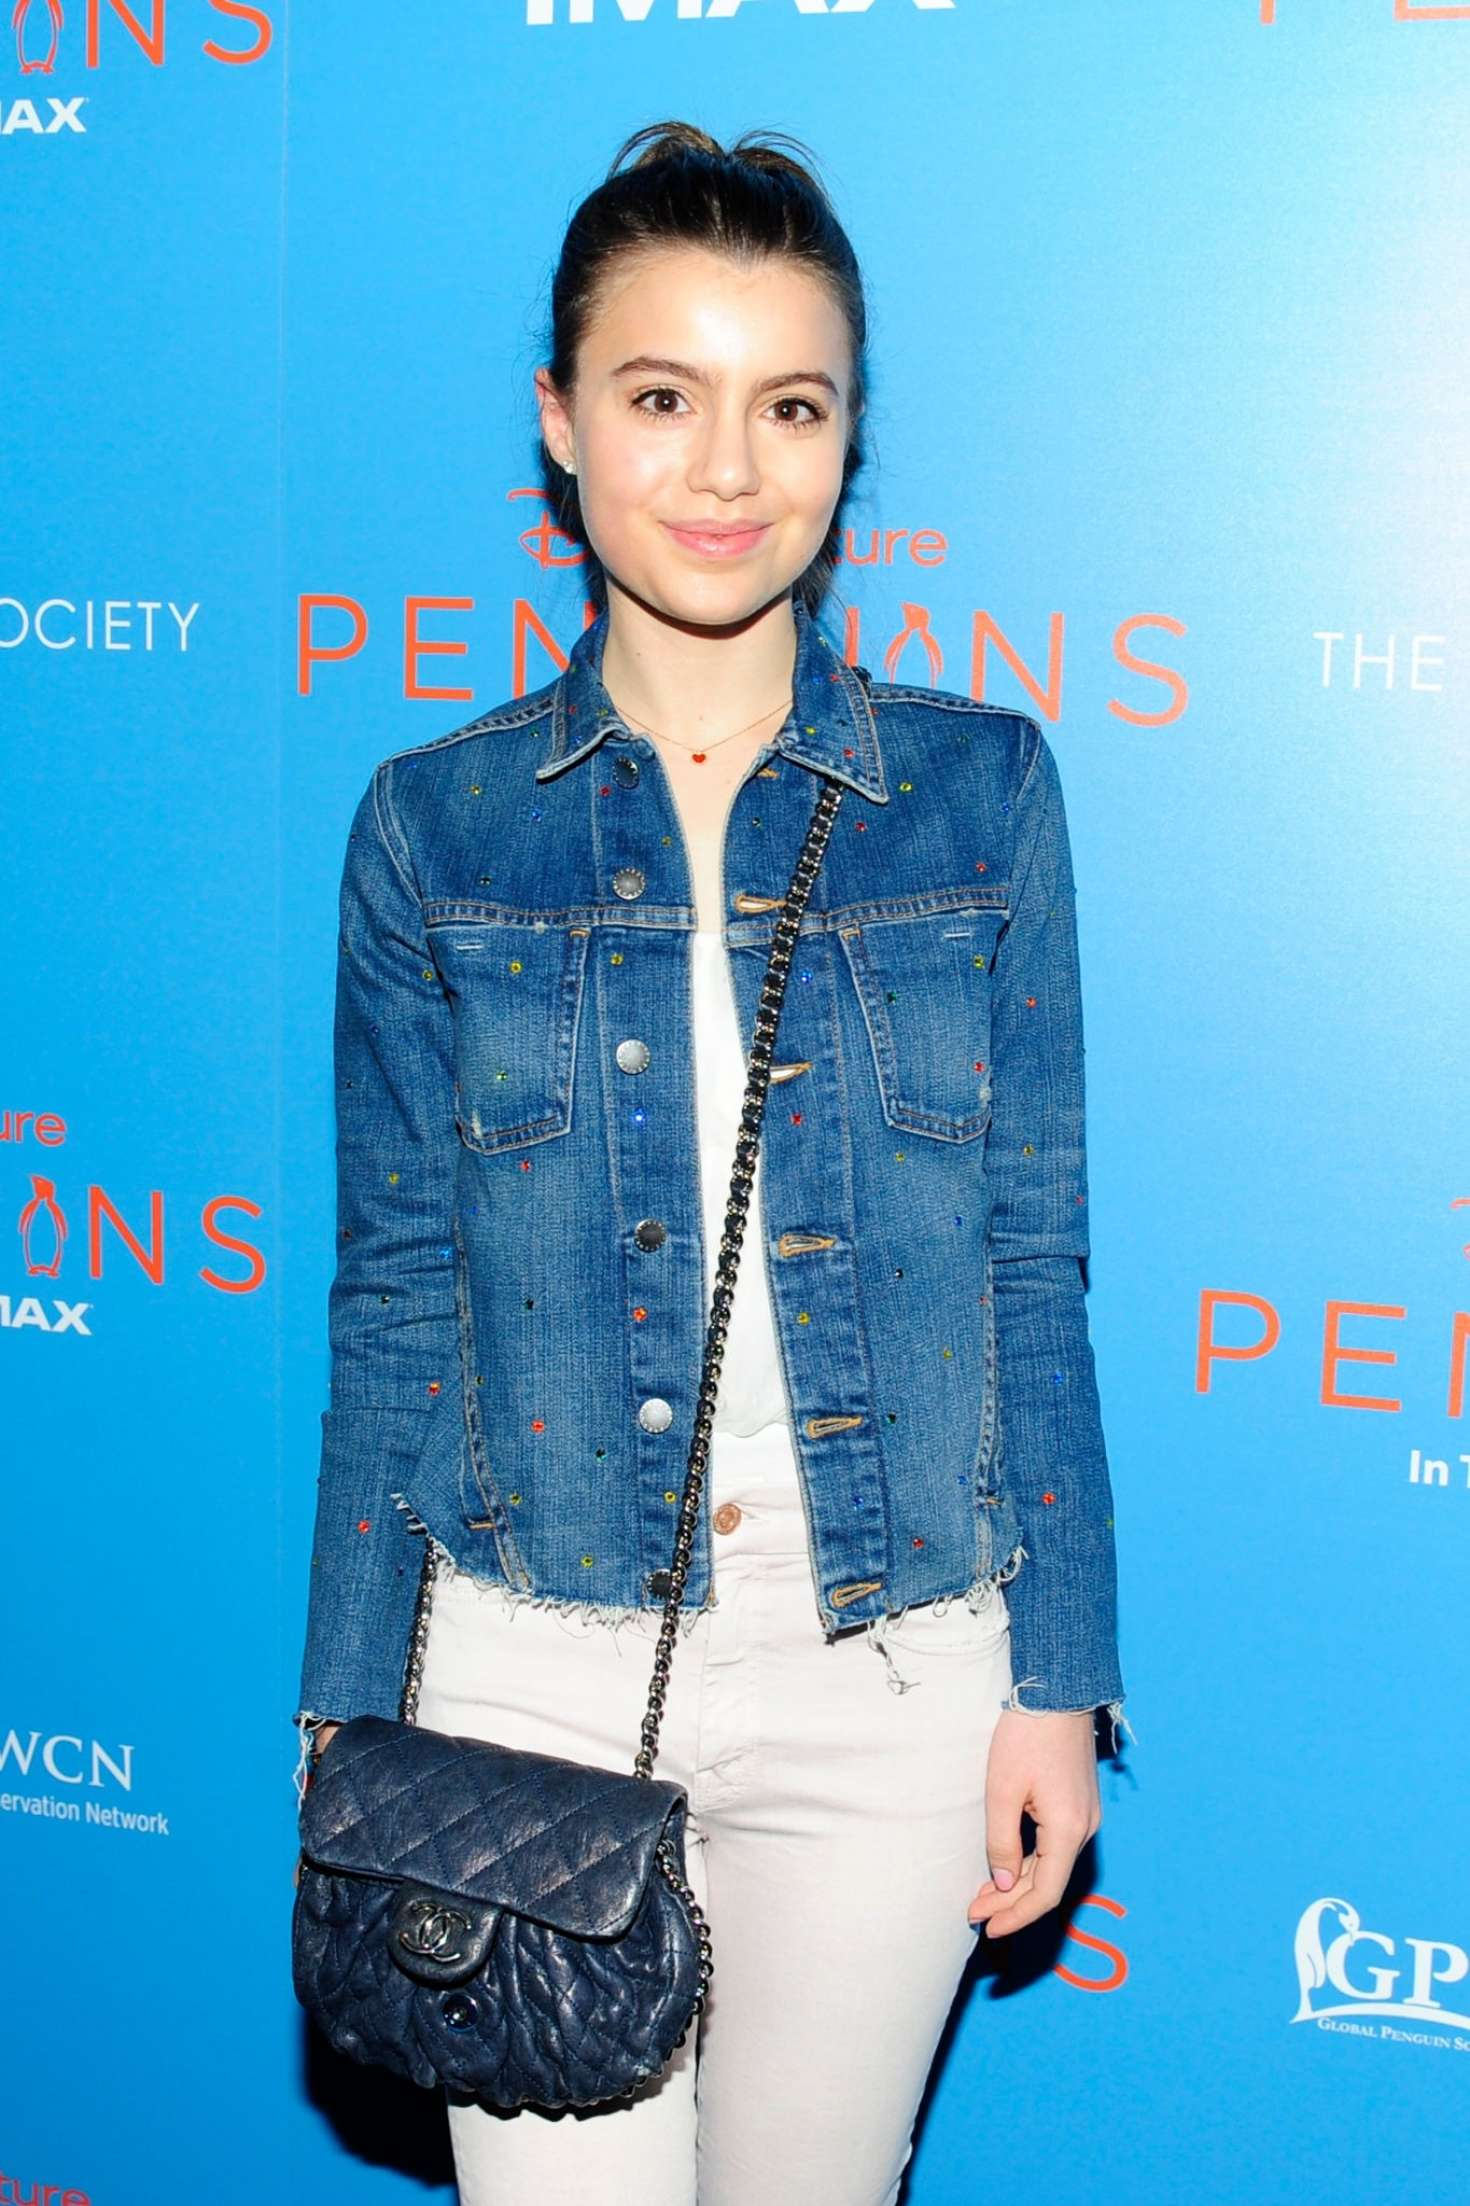 Sami Gayle - Special Sscreening of 'Penguins' in New York City